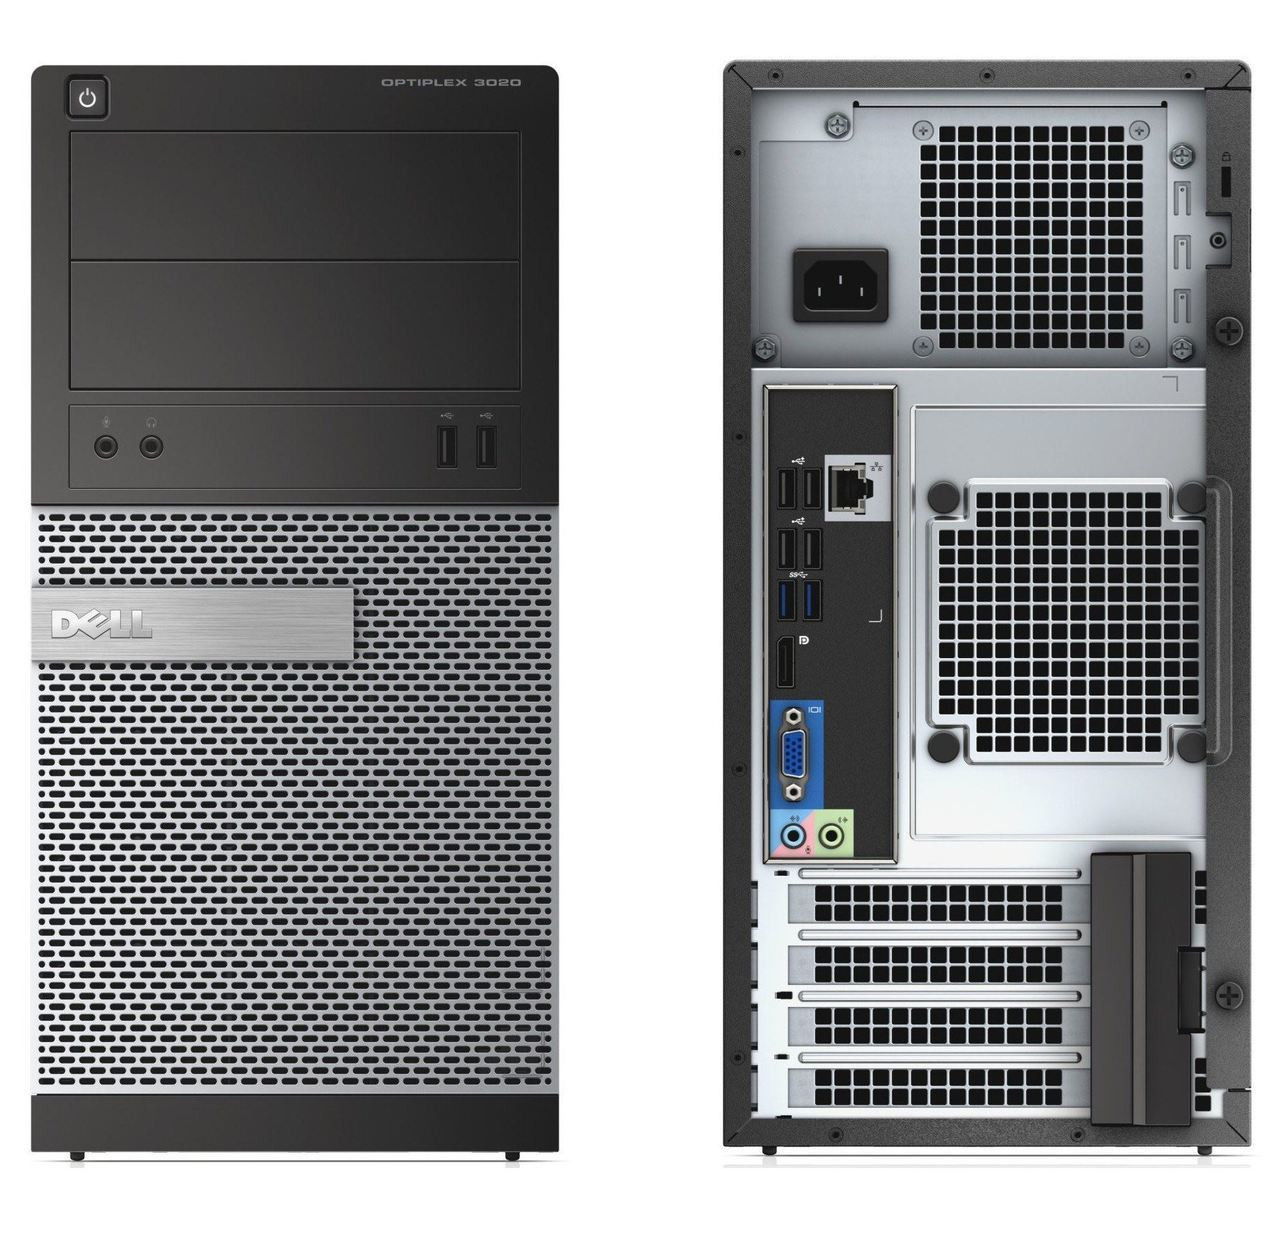 Dell Optiplex 3020 Tower Quad Core i5 3.3GHz, 8GB Ram, 500GB HDD, DVD-RW, Windows 10 Pro 64 Desktop Computer